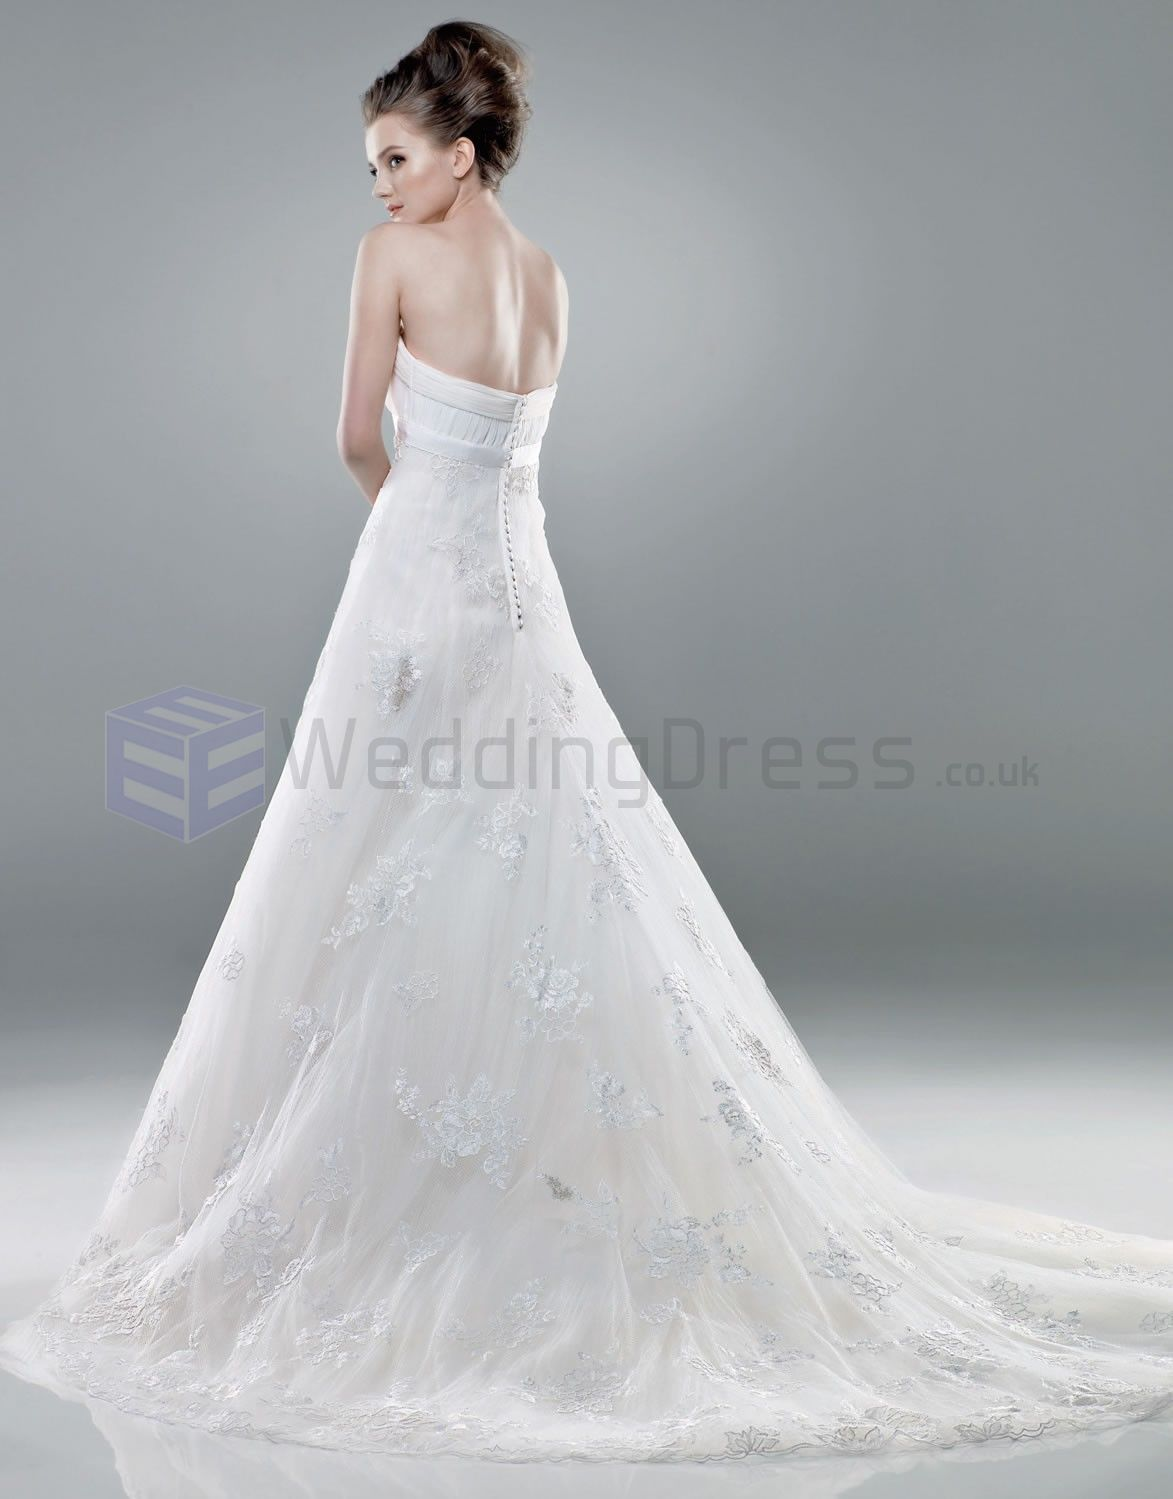 Bodice wedding dress  Ball Gown Tulle Embroidered Bodice Strapless Neckline Chapel Length